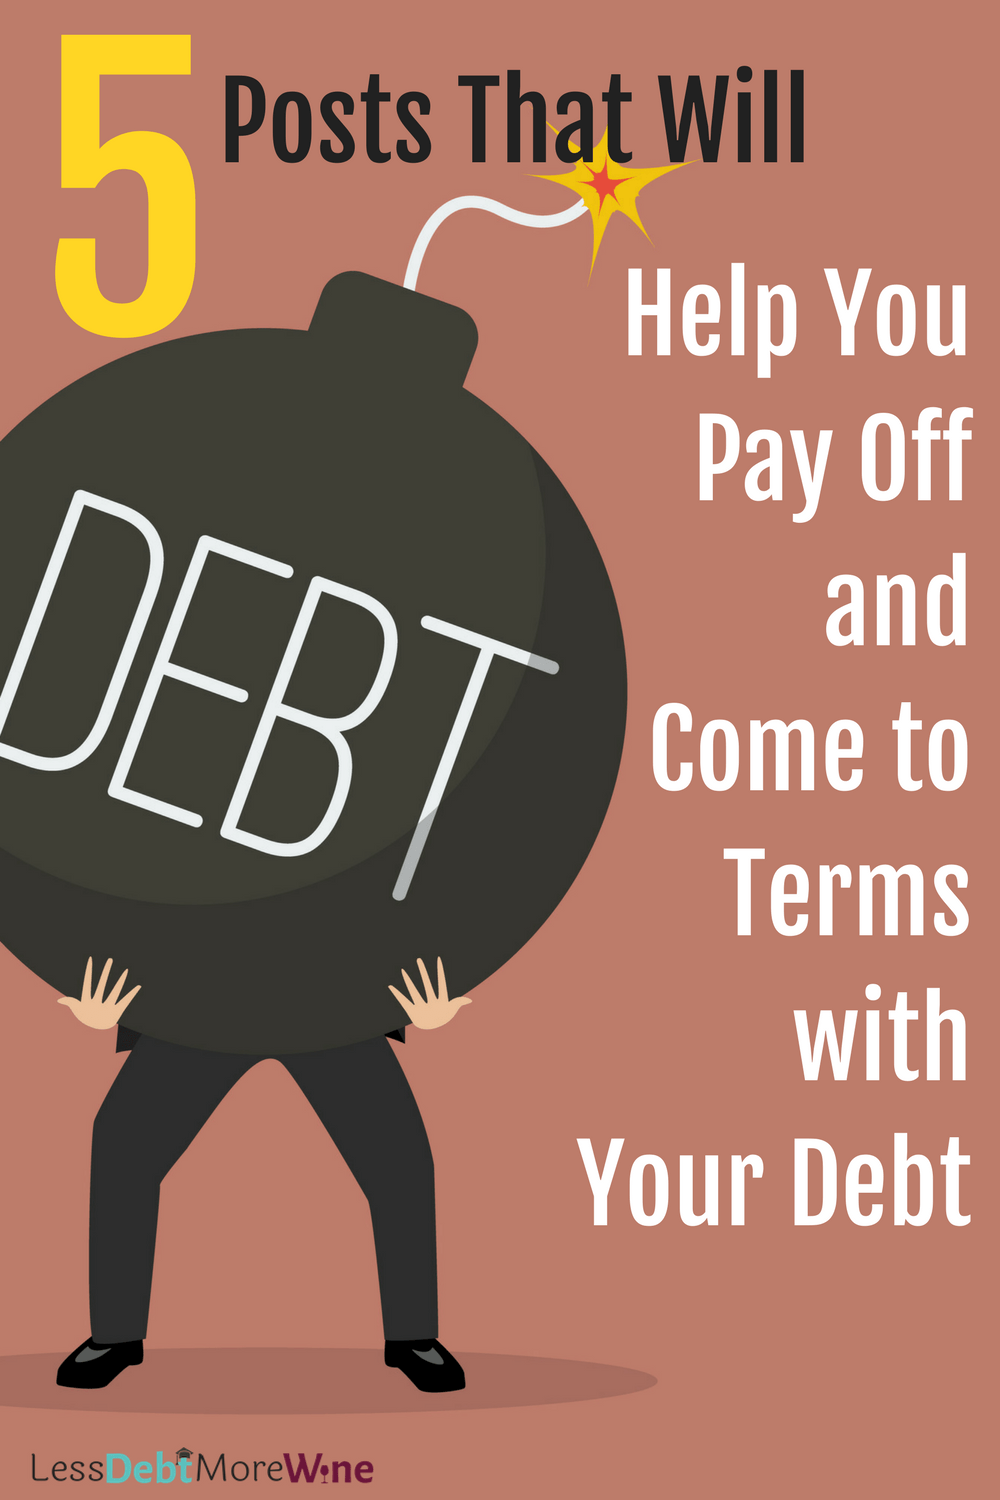 5 posts that will help you pay off your debt | how to pay off debt